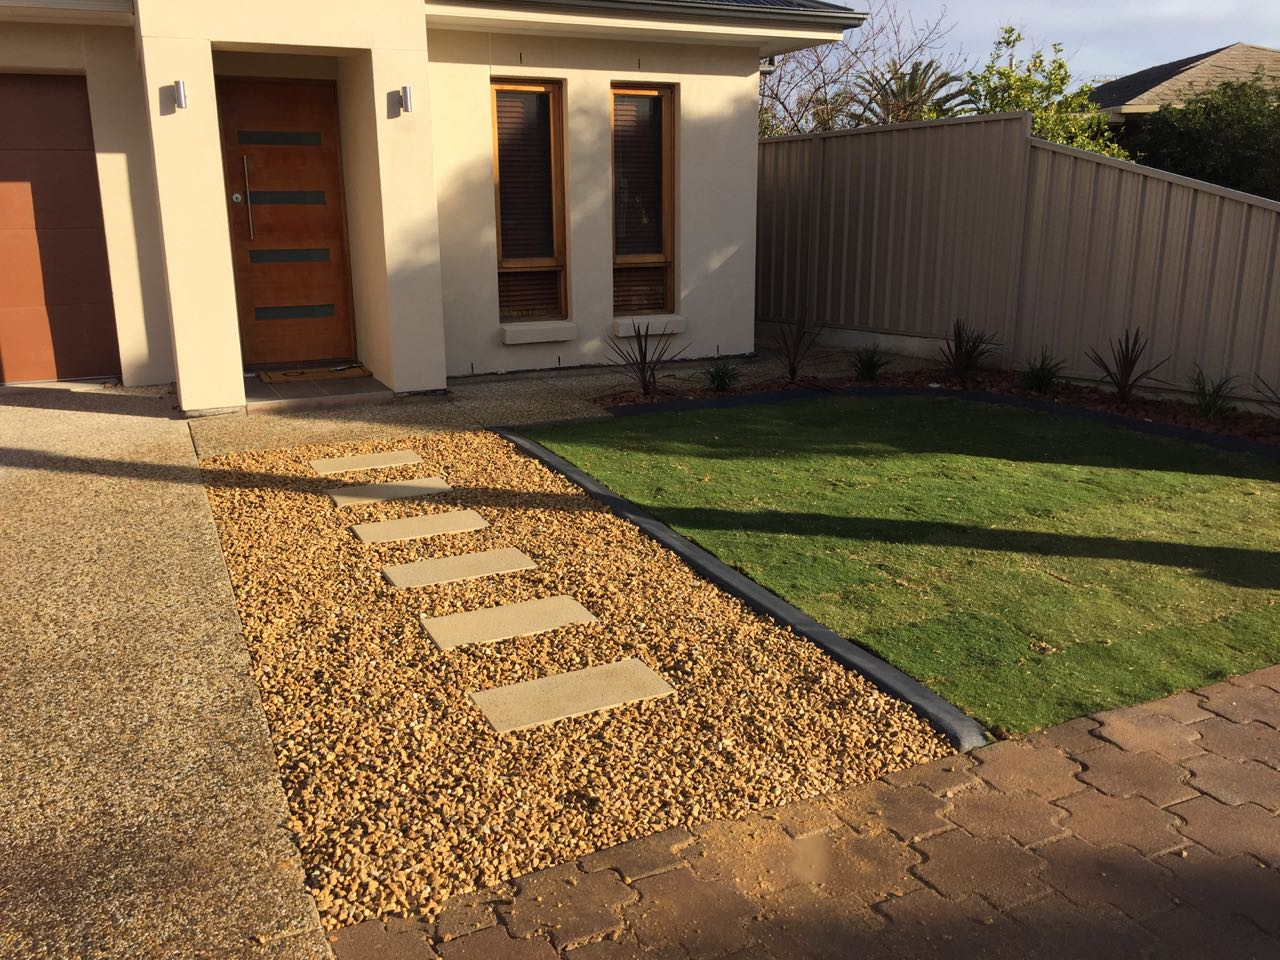 North Gate - Concrete Tiled Pathway Adding To Front Lawn's Charm